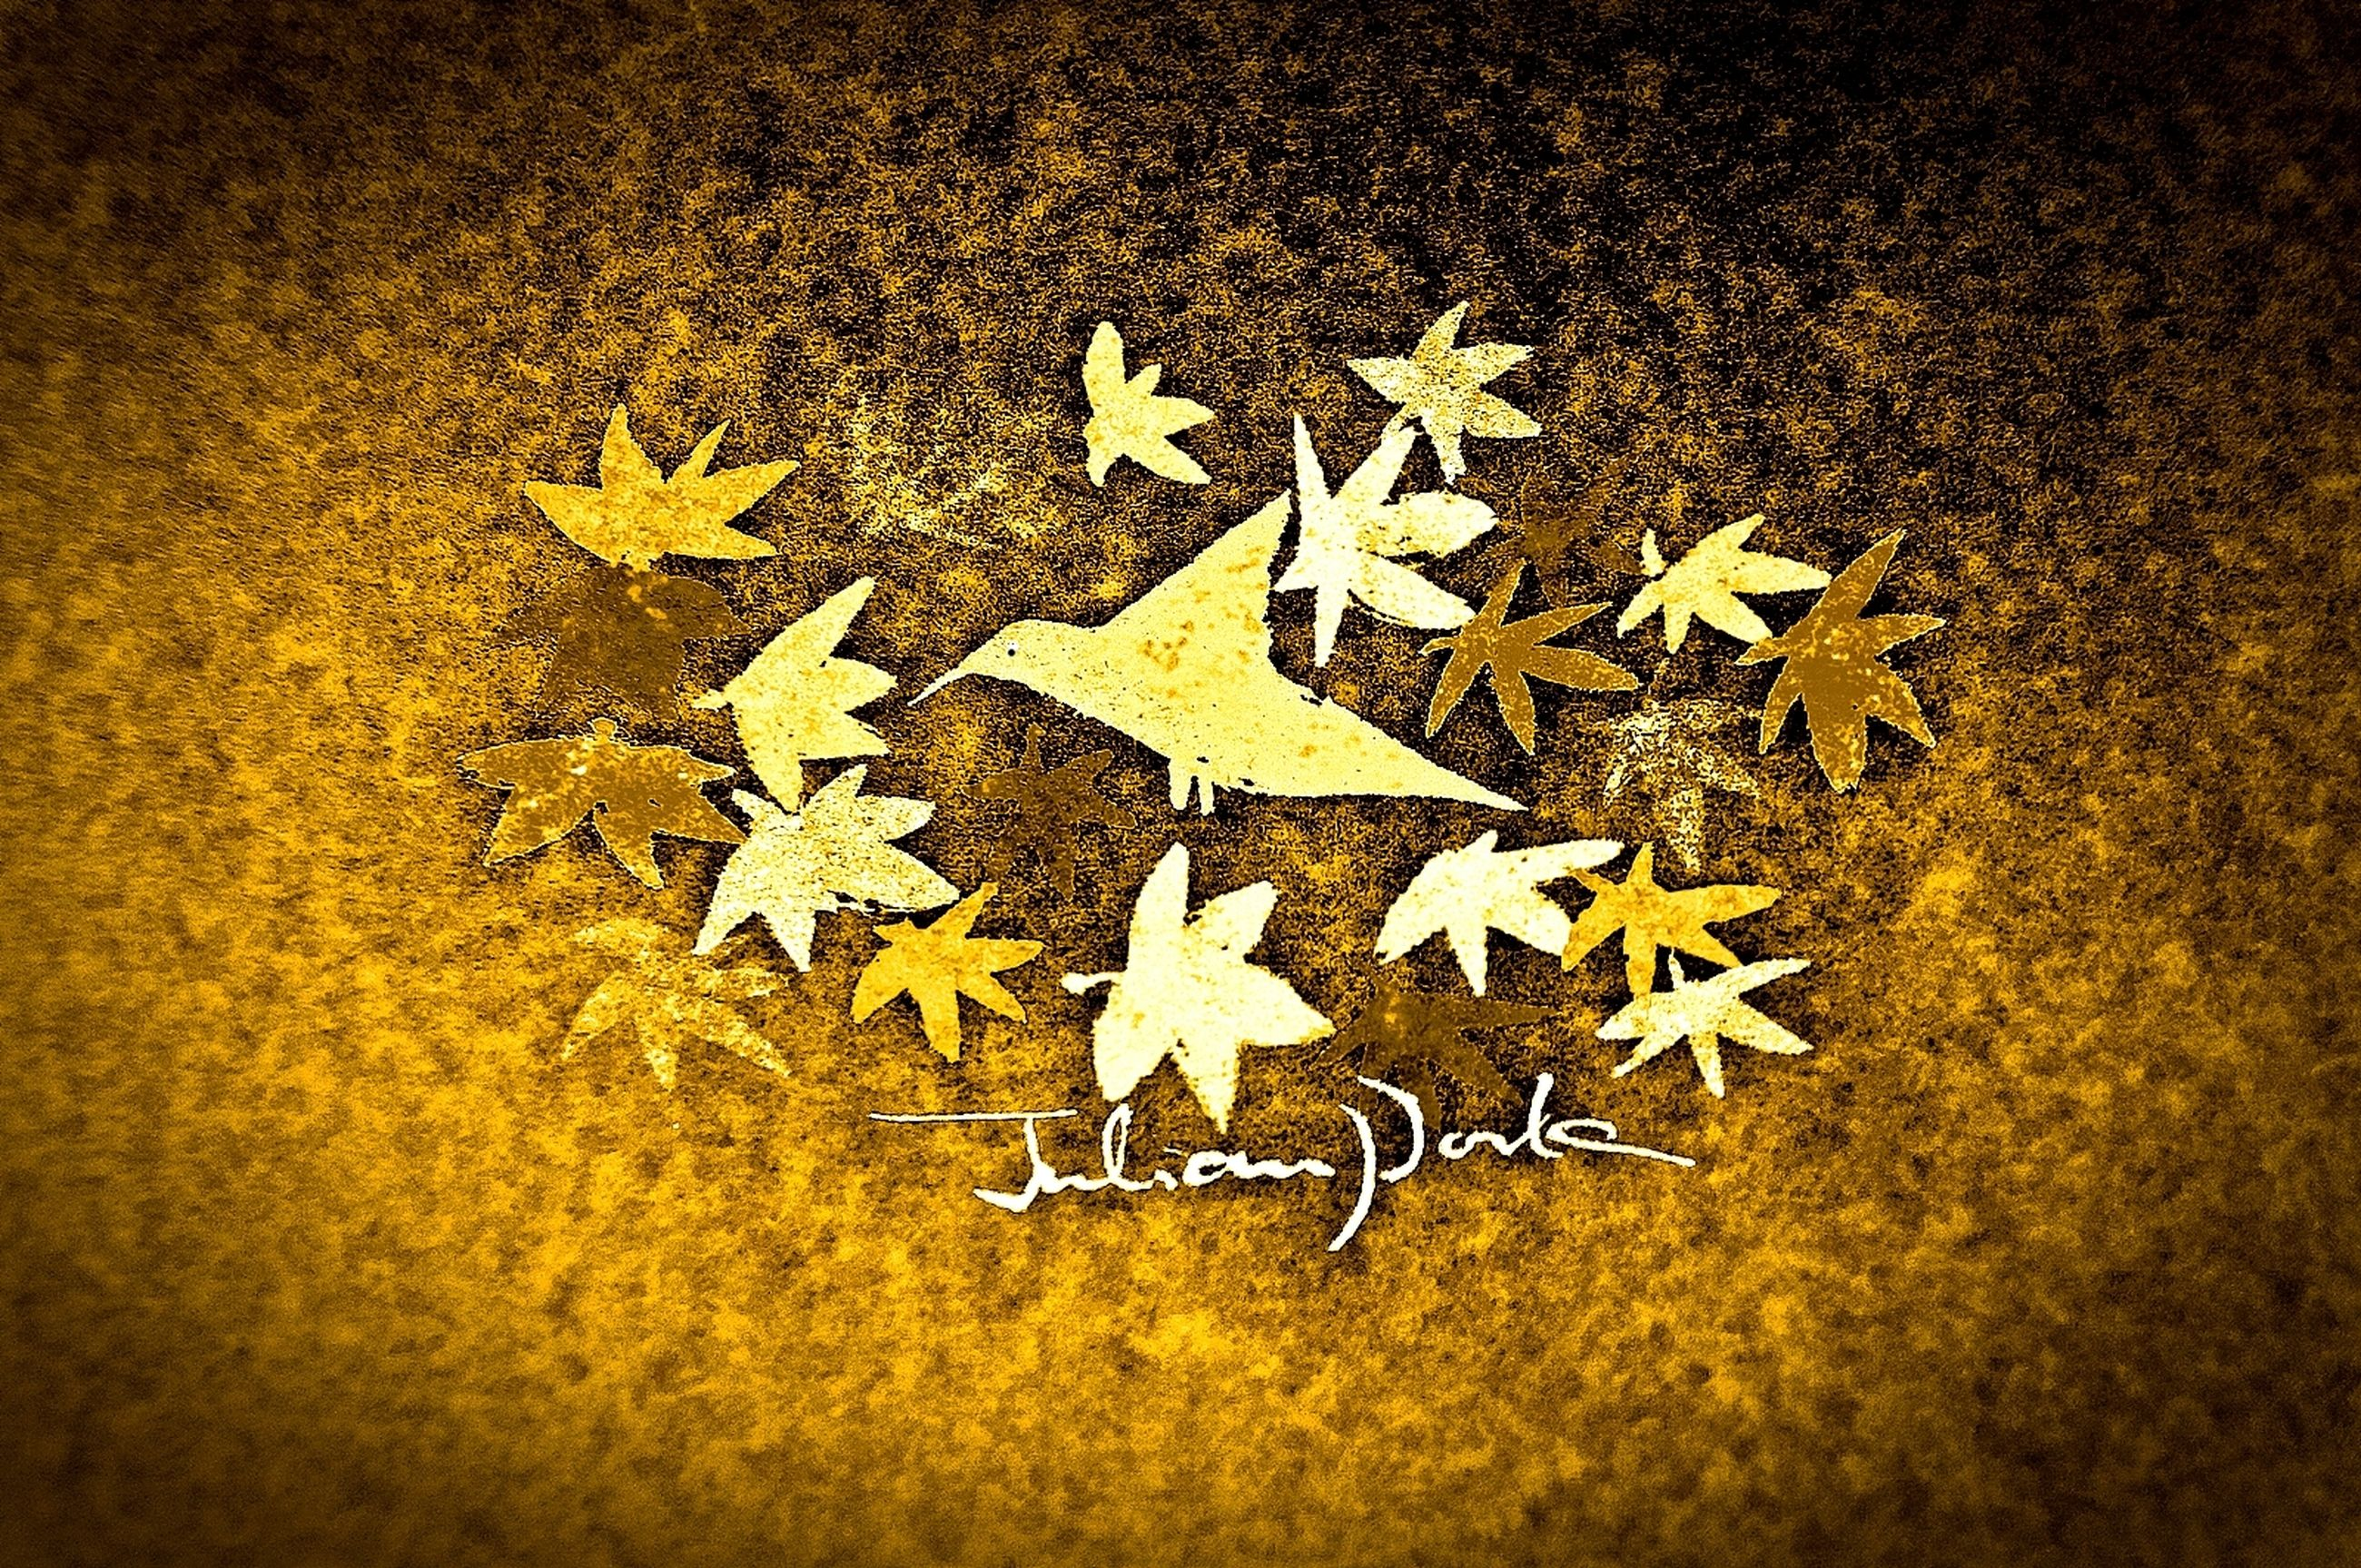 christmas, celebration, holiday, indoors, no people, shape, close-up, star shape, still life, food and drink, christmas decoration, selective focus, snowflake, yellow, food, decoration, table, vignette, backgrounds, star